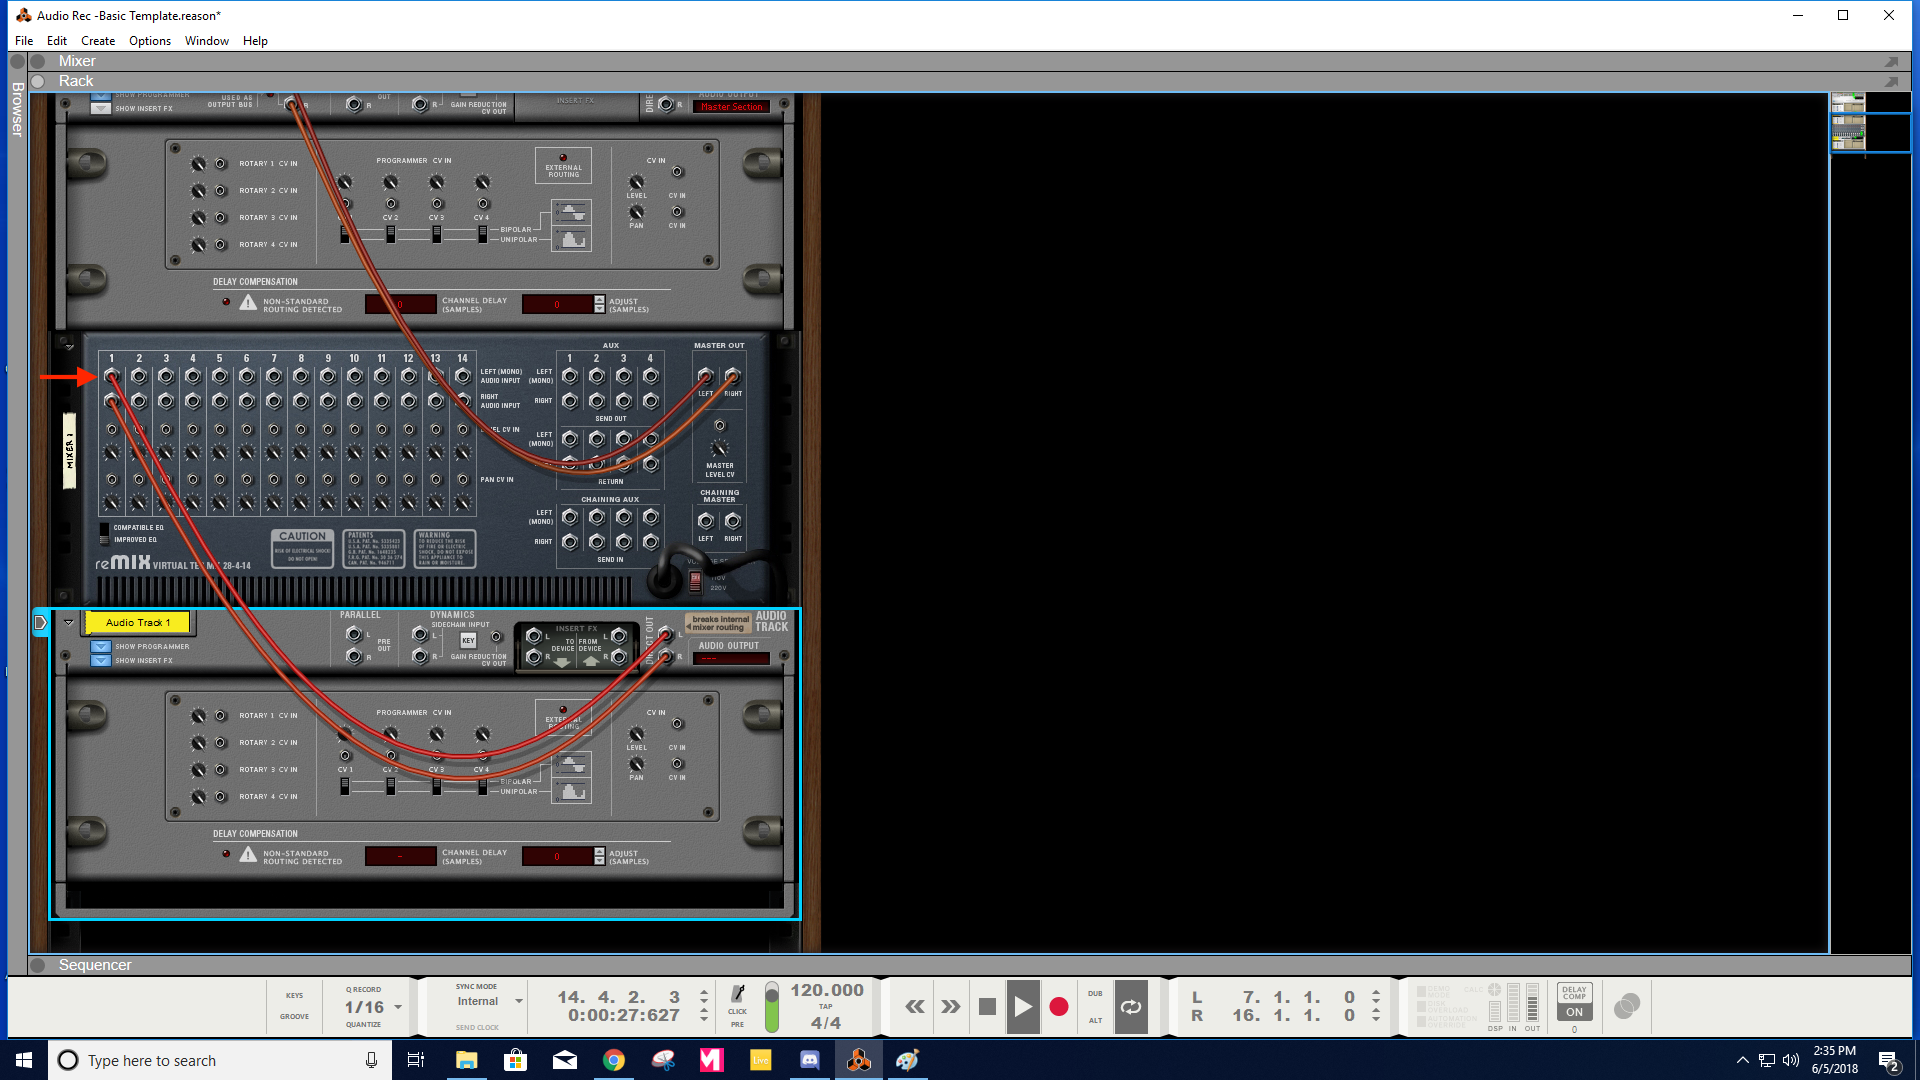 Reason_Rack_Routing-_Recording_Audio-_Route_to_Mixer.png